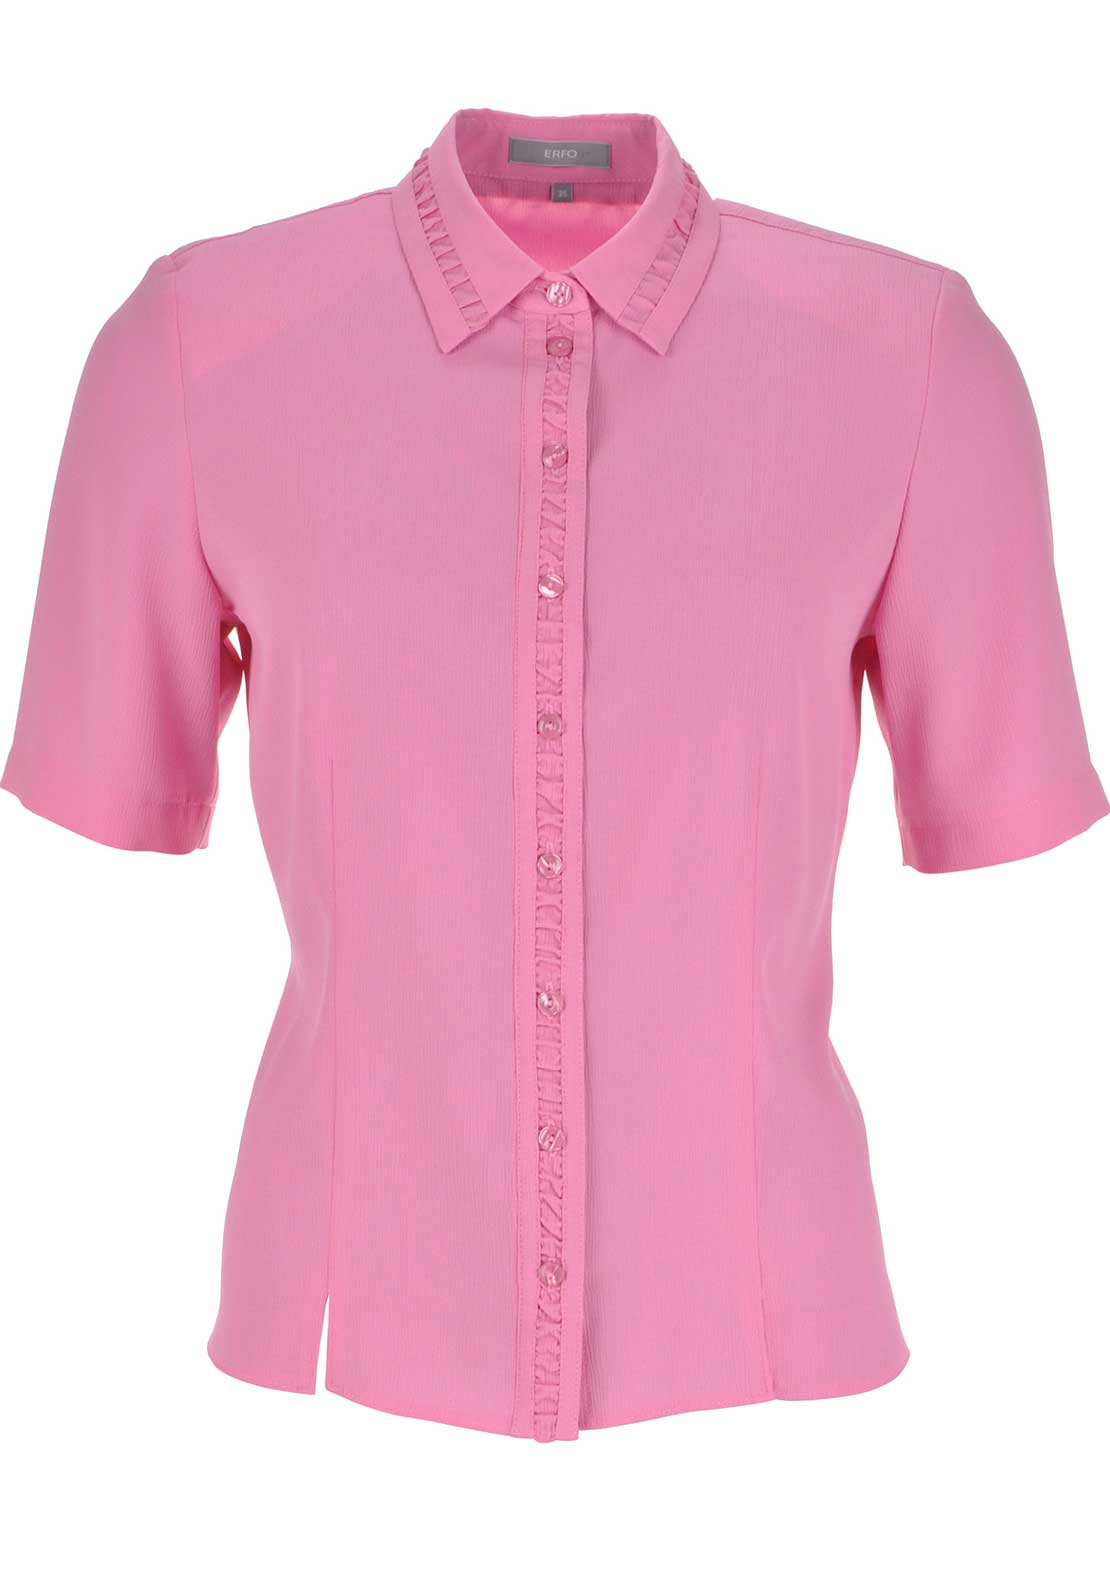 ERFO Textured Short Sleeve Blouse, Pink